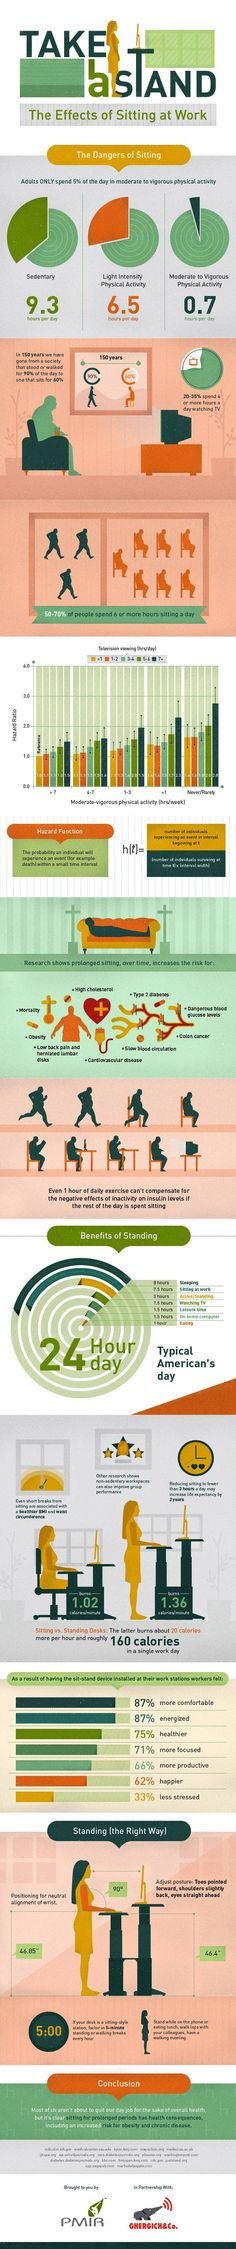 Take A Stand: The Effects Of Sitting At Work #infographic #Workplace #Hazards #EffectOfSitting